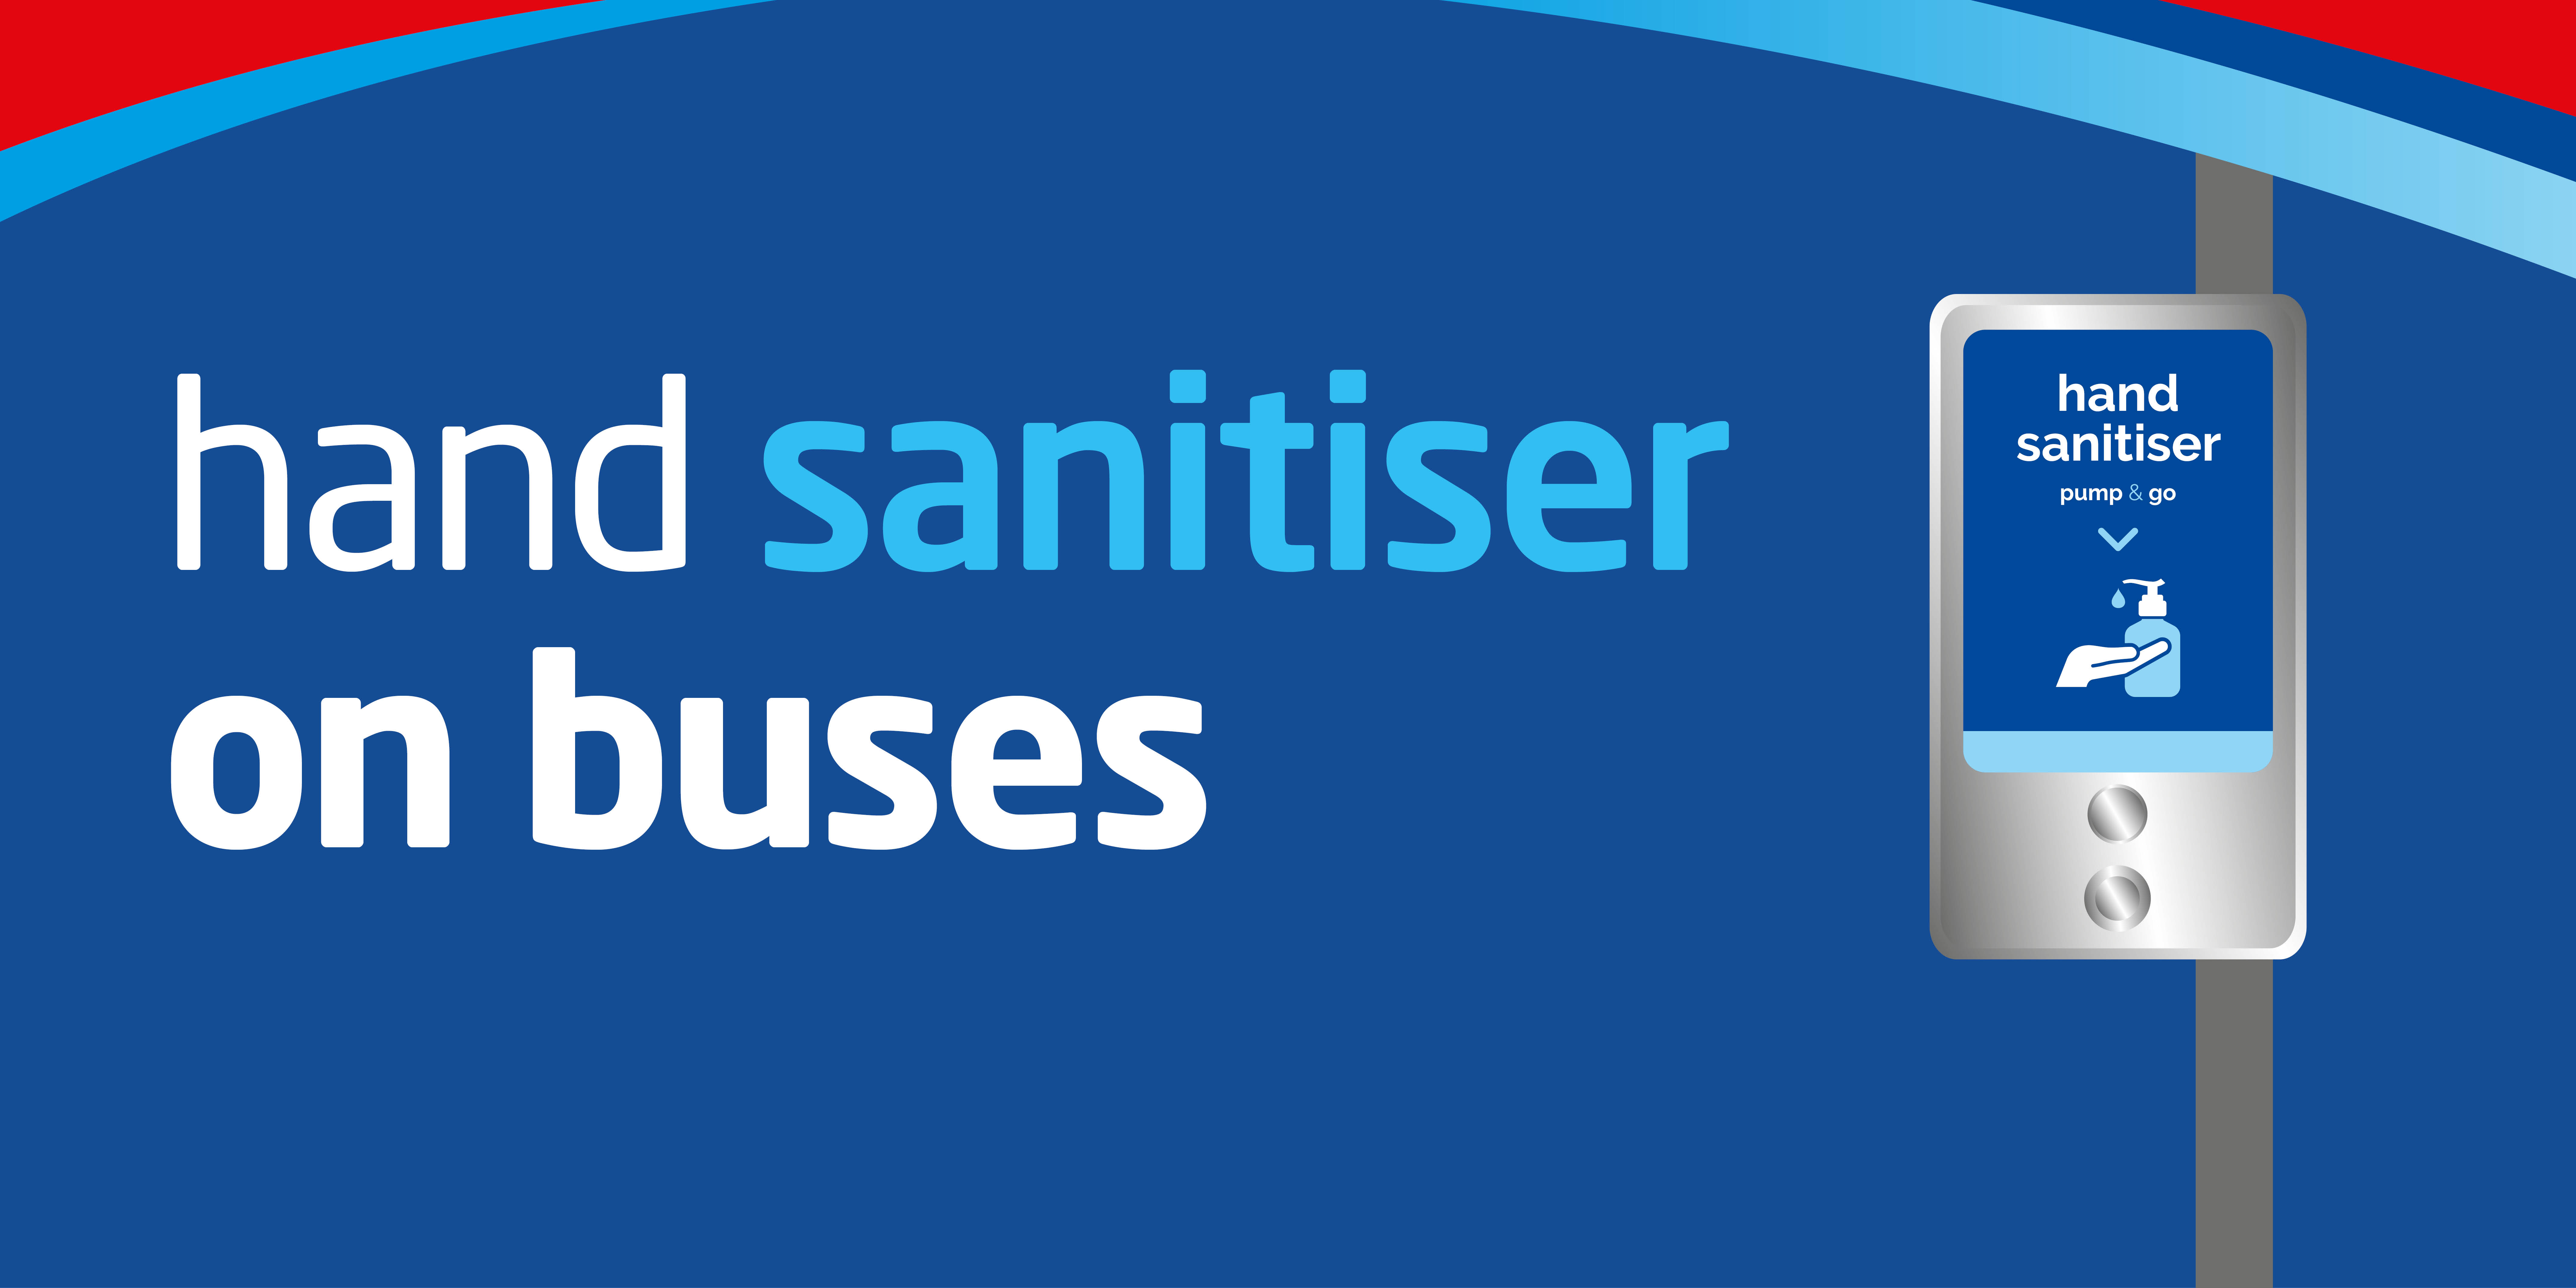 Image with hand sanitiser and text saying 'hand sanitiser on buses'